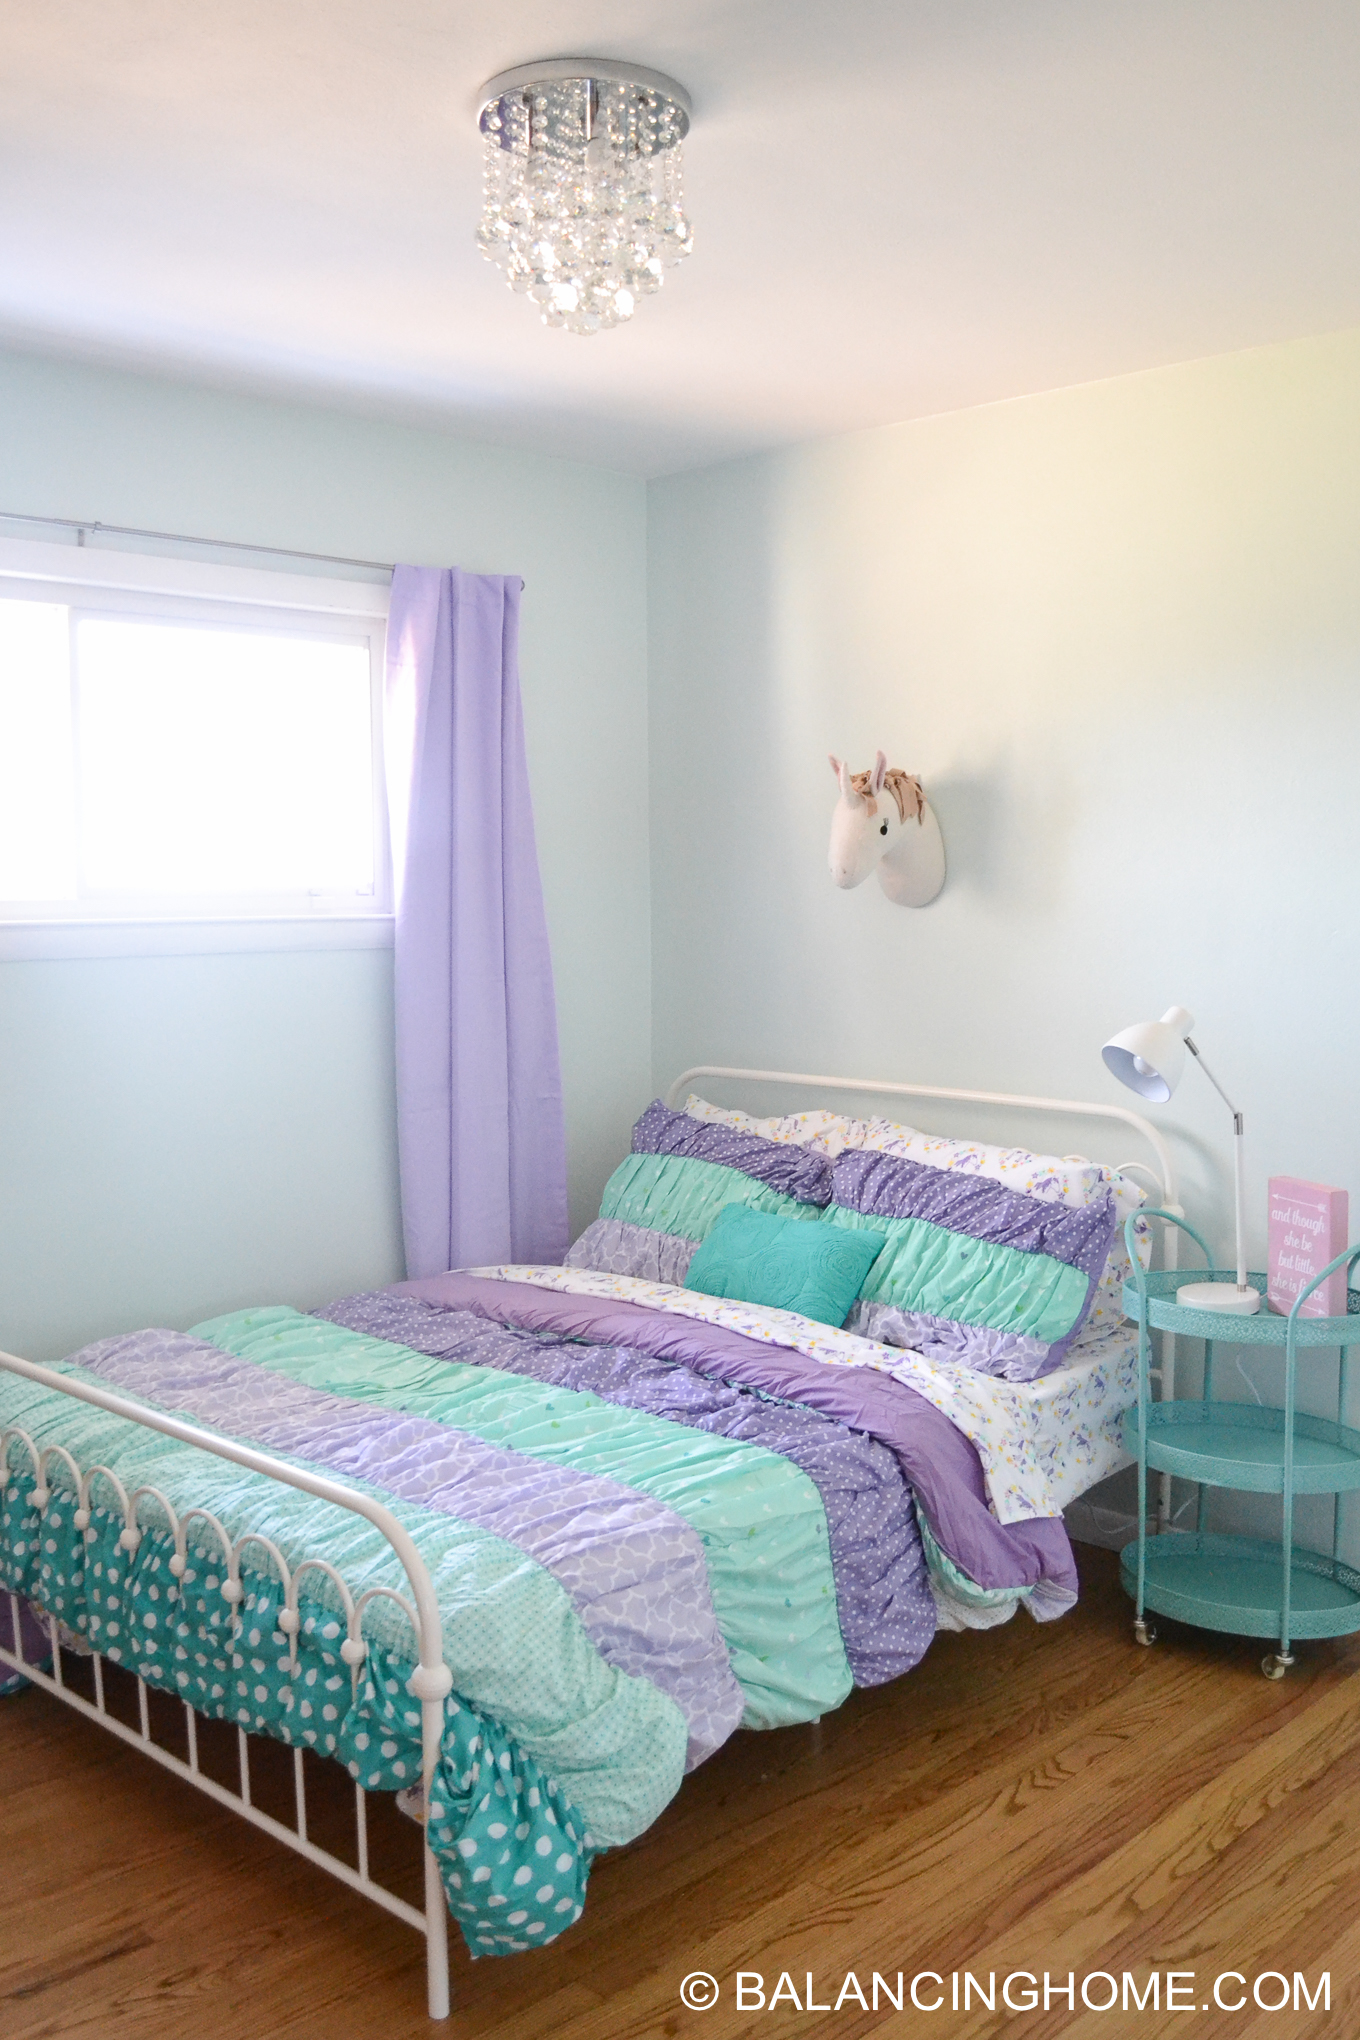 Small Bedroom Decor & Bedroom Decorating Ideas: Girl bedroom makeover in mint and purple